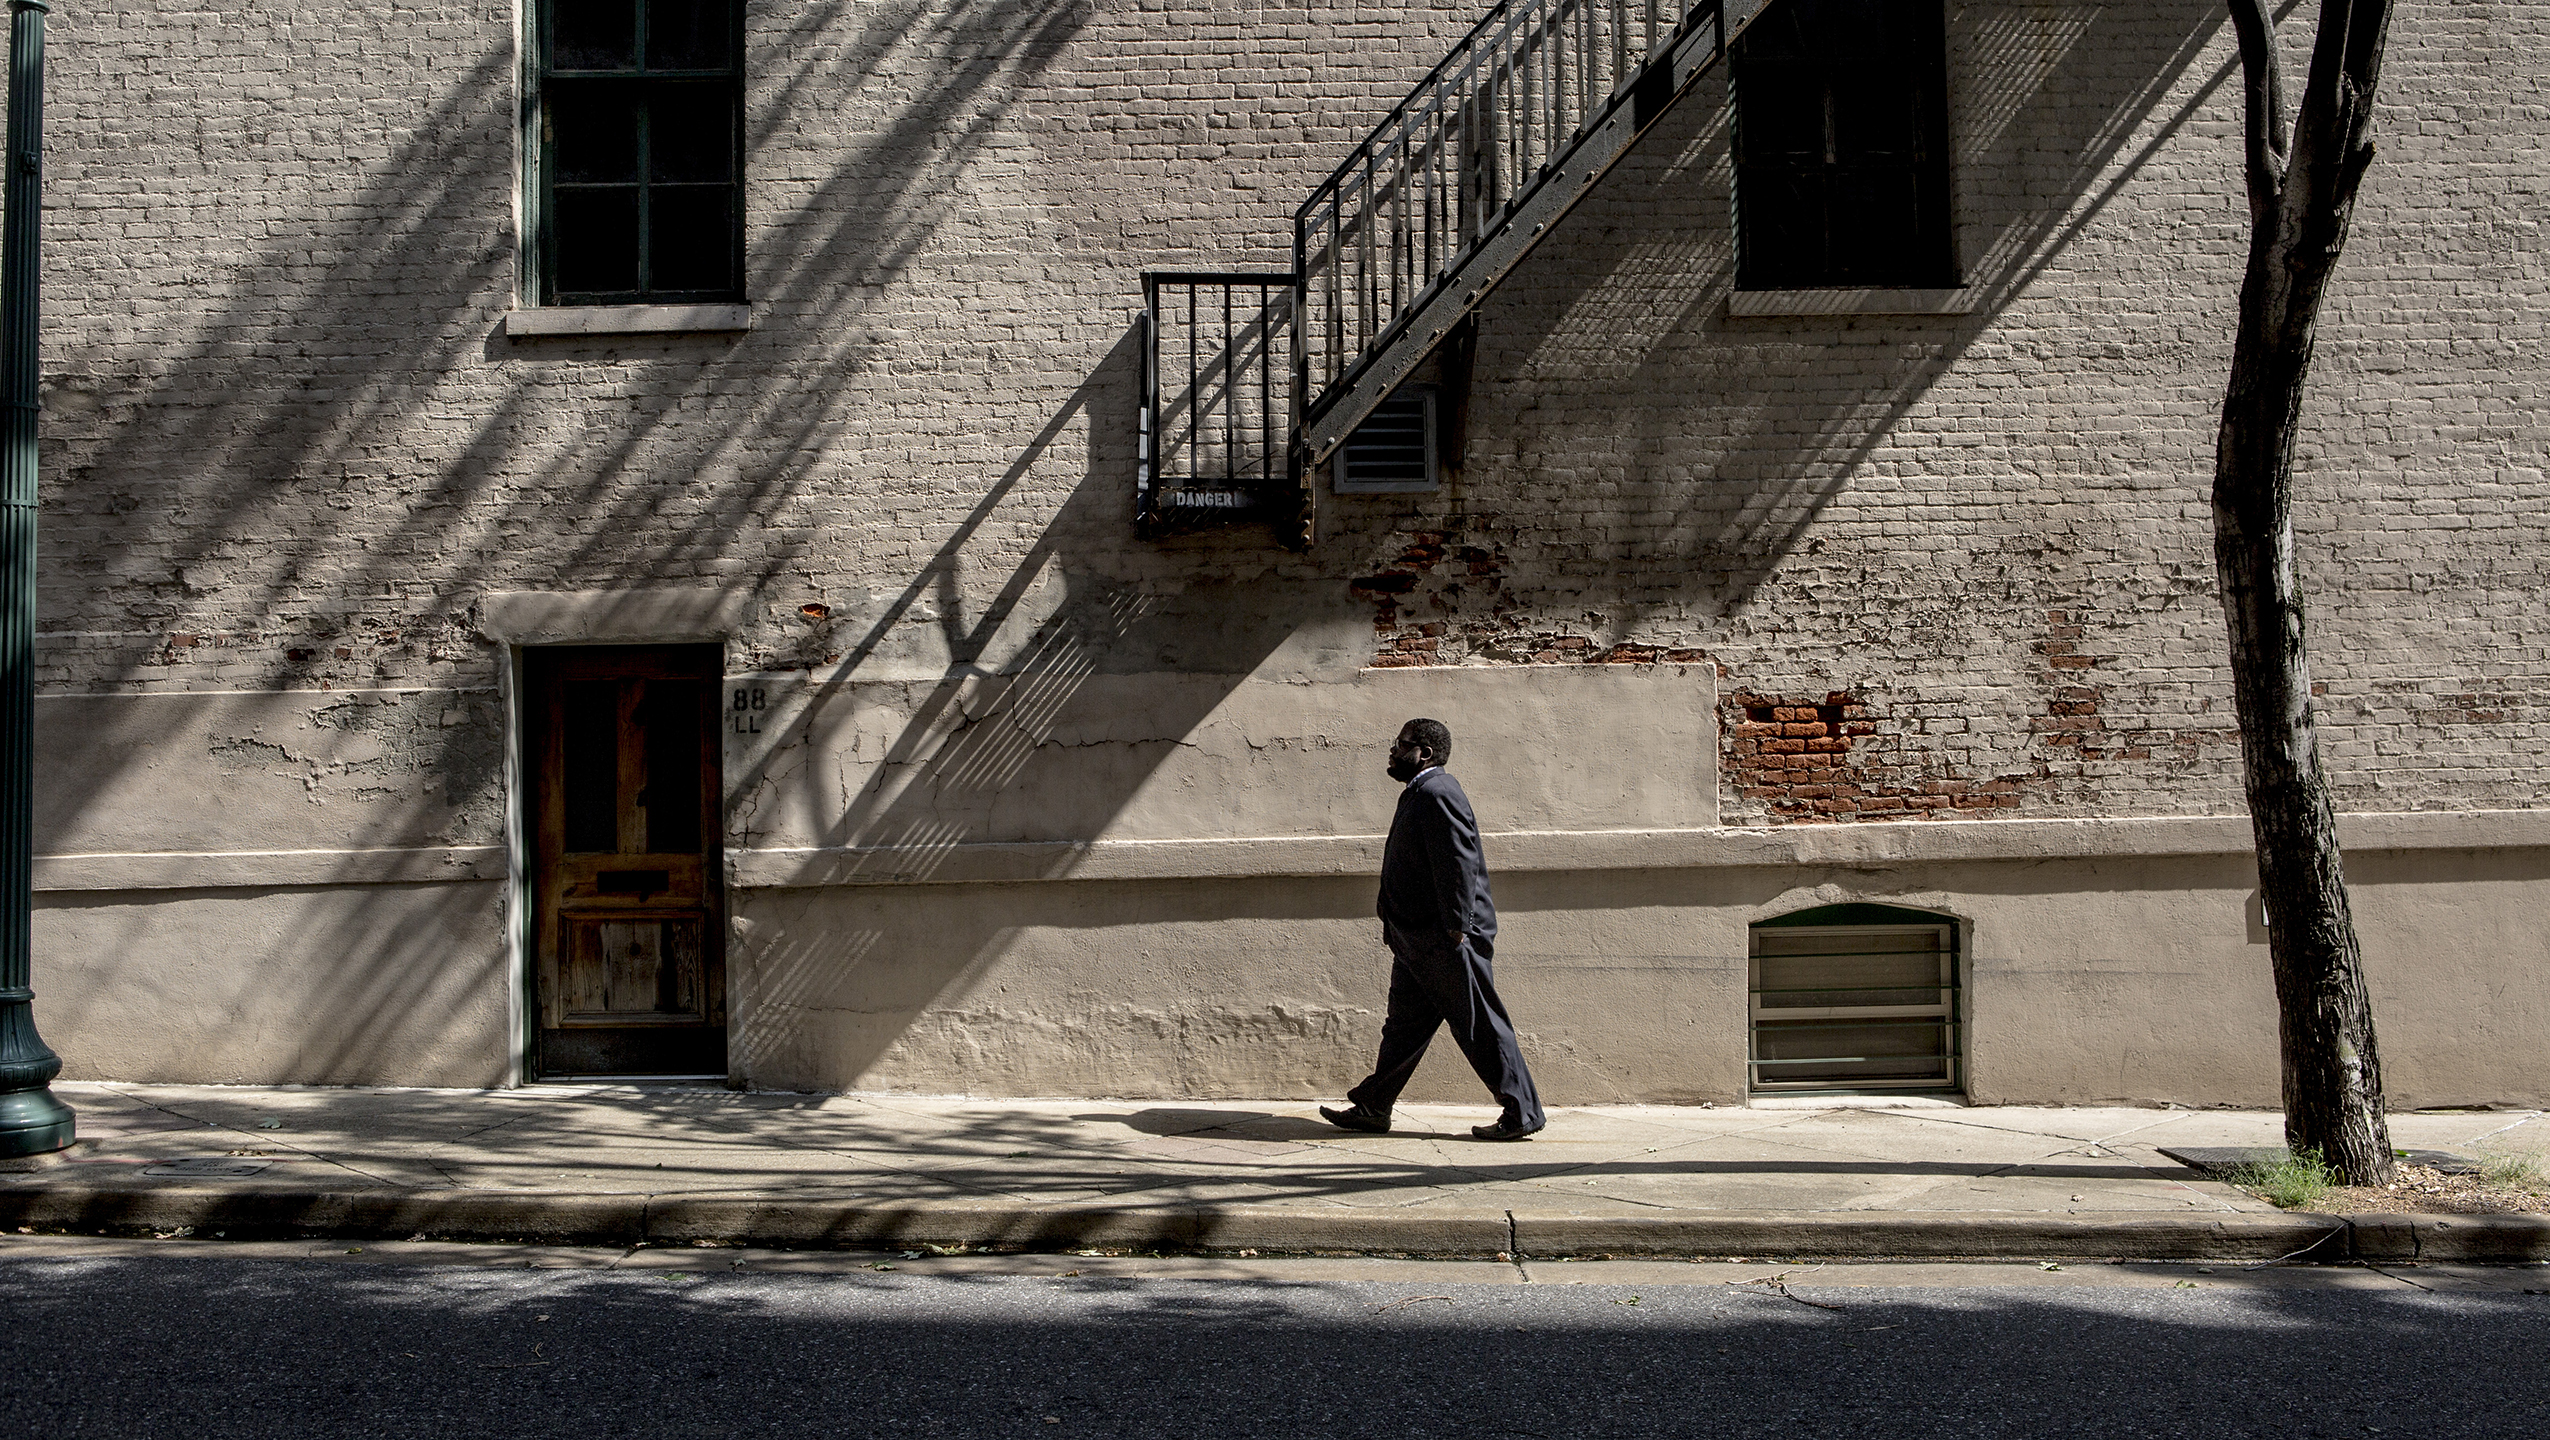 Darrell Cobbins, president and principal broker at Universal Commercial Real Estate, LLC, near his office in Downtown Memphis. <span class=&apos;image-credits&apos;>Andrea Morales, HuffPost</span>